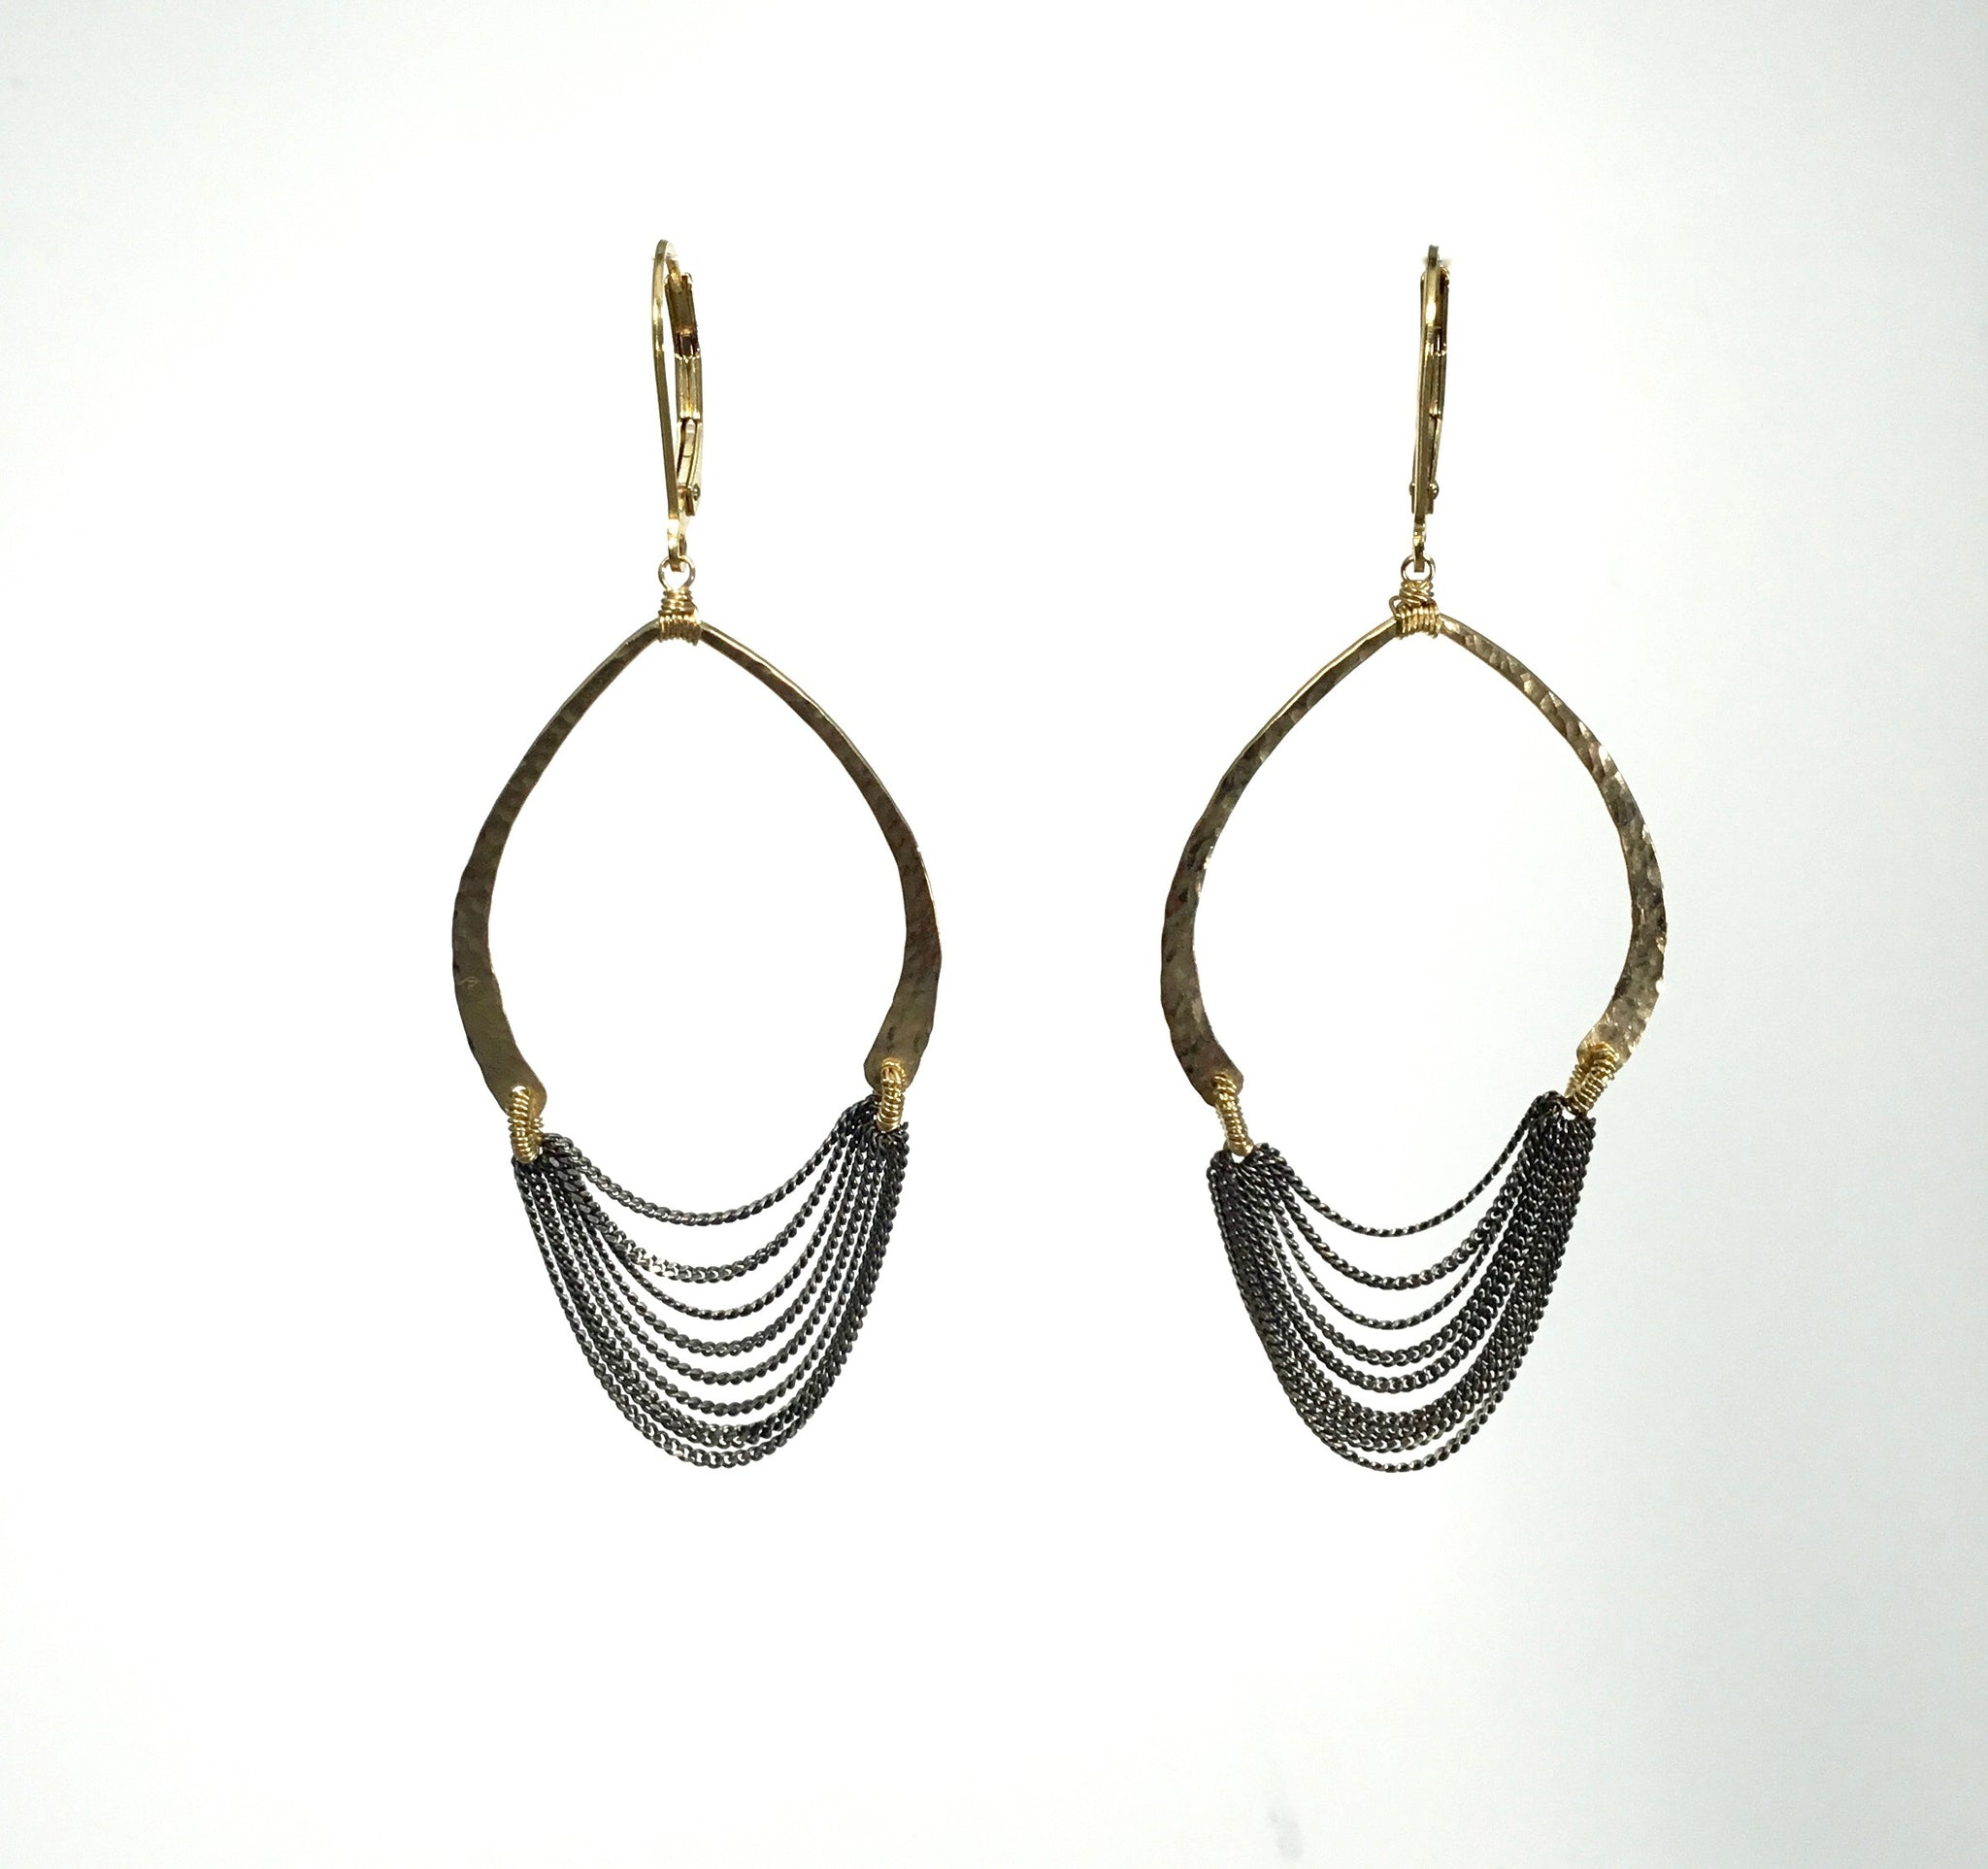 Dana Kellin Silver and Gold Deco Style Earrings